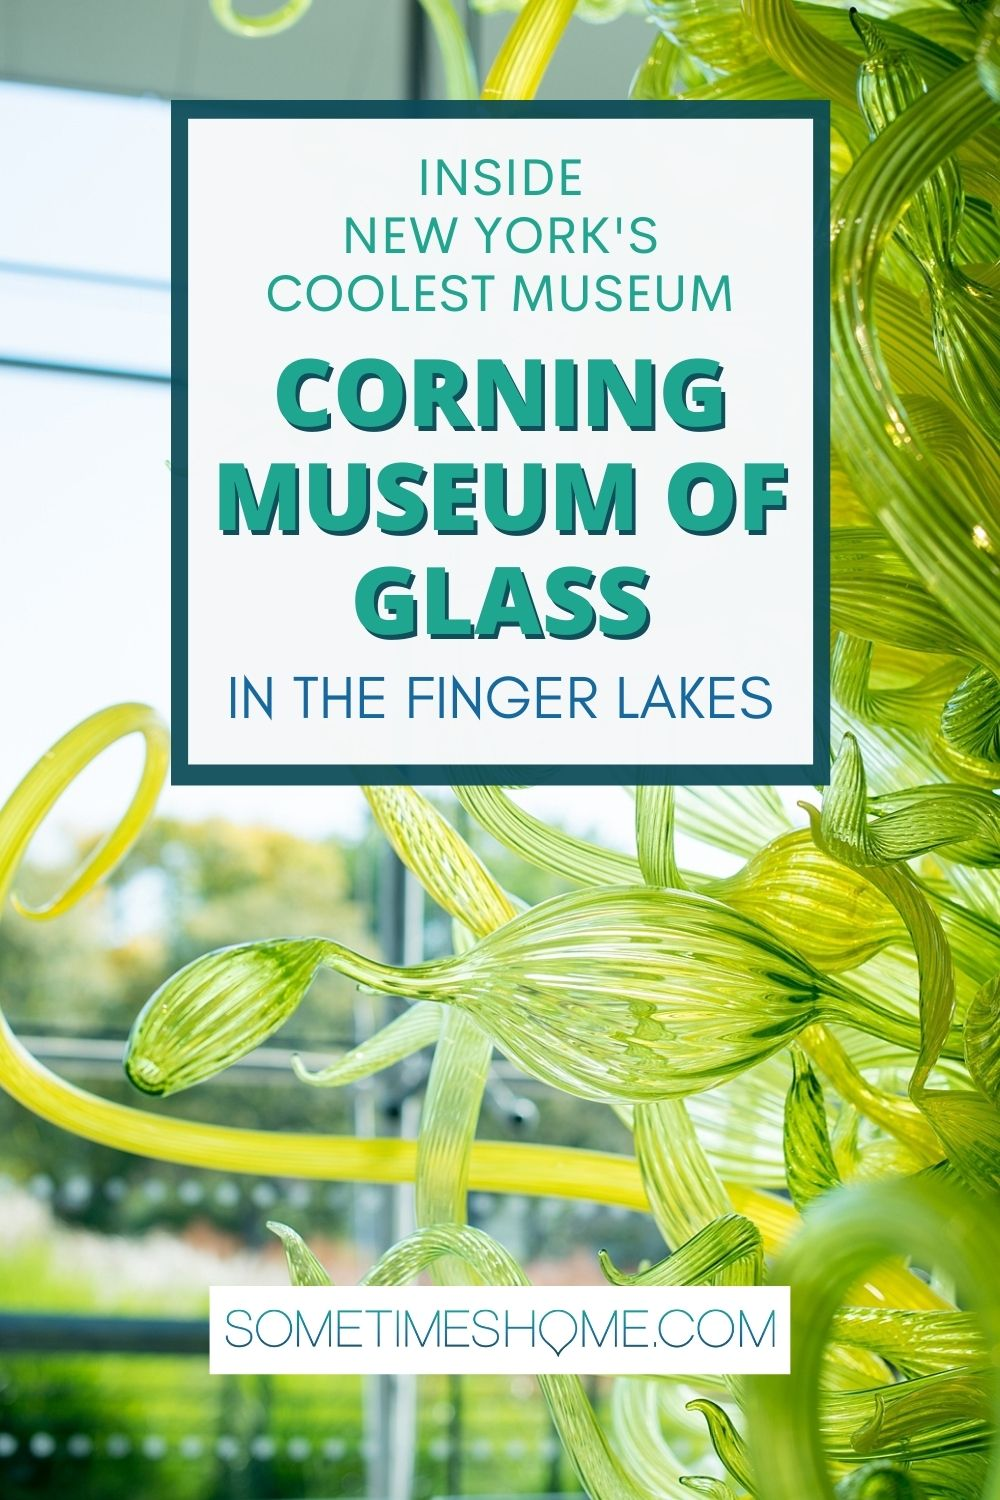 Pinterest image that says Inside New York's Coolest Museum, the Corning Museum of Glass, in the Finger Lakes